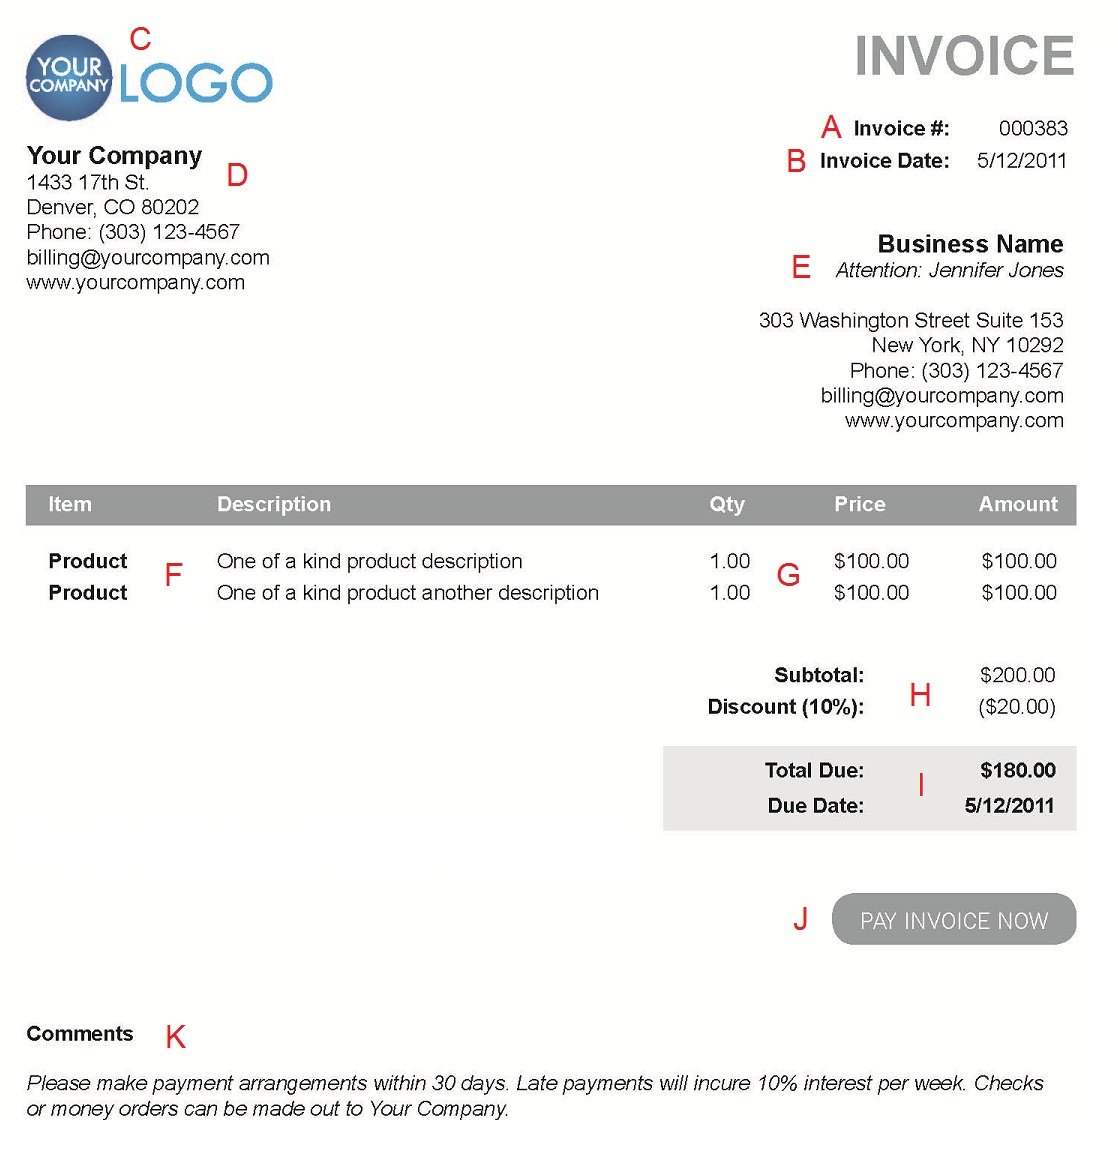 Sandiegolocksmithsus  Surprising The  Different Sections Of An Electronic Payment Invoice With Fascinating A  With Extraordinary Invoice Search Also Invoice Templates Printable Free In Addition Invoice Of Car And Tally Invoice As Well As Free Invoice Template Open Office Additionally Travel Agency Invoice Format From Paysimplecom With Sandiegolocksmithsus  Fascinating The  Different Sections Of An Electronic Payment Invoice With Extraordinary A  And Surprising Invoice Search Also Invoice Templates Printable Free In Addition Invoice Of Car From Paysimplecom